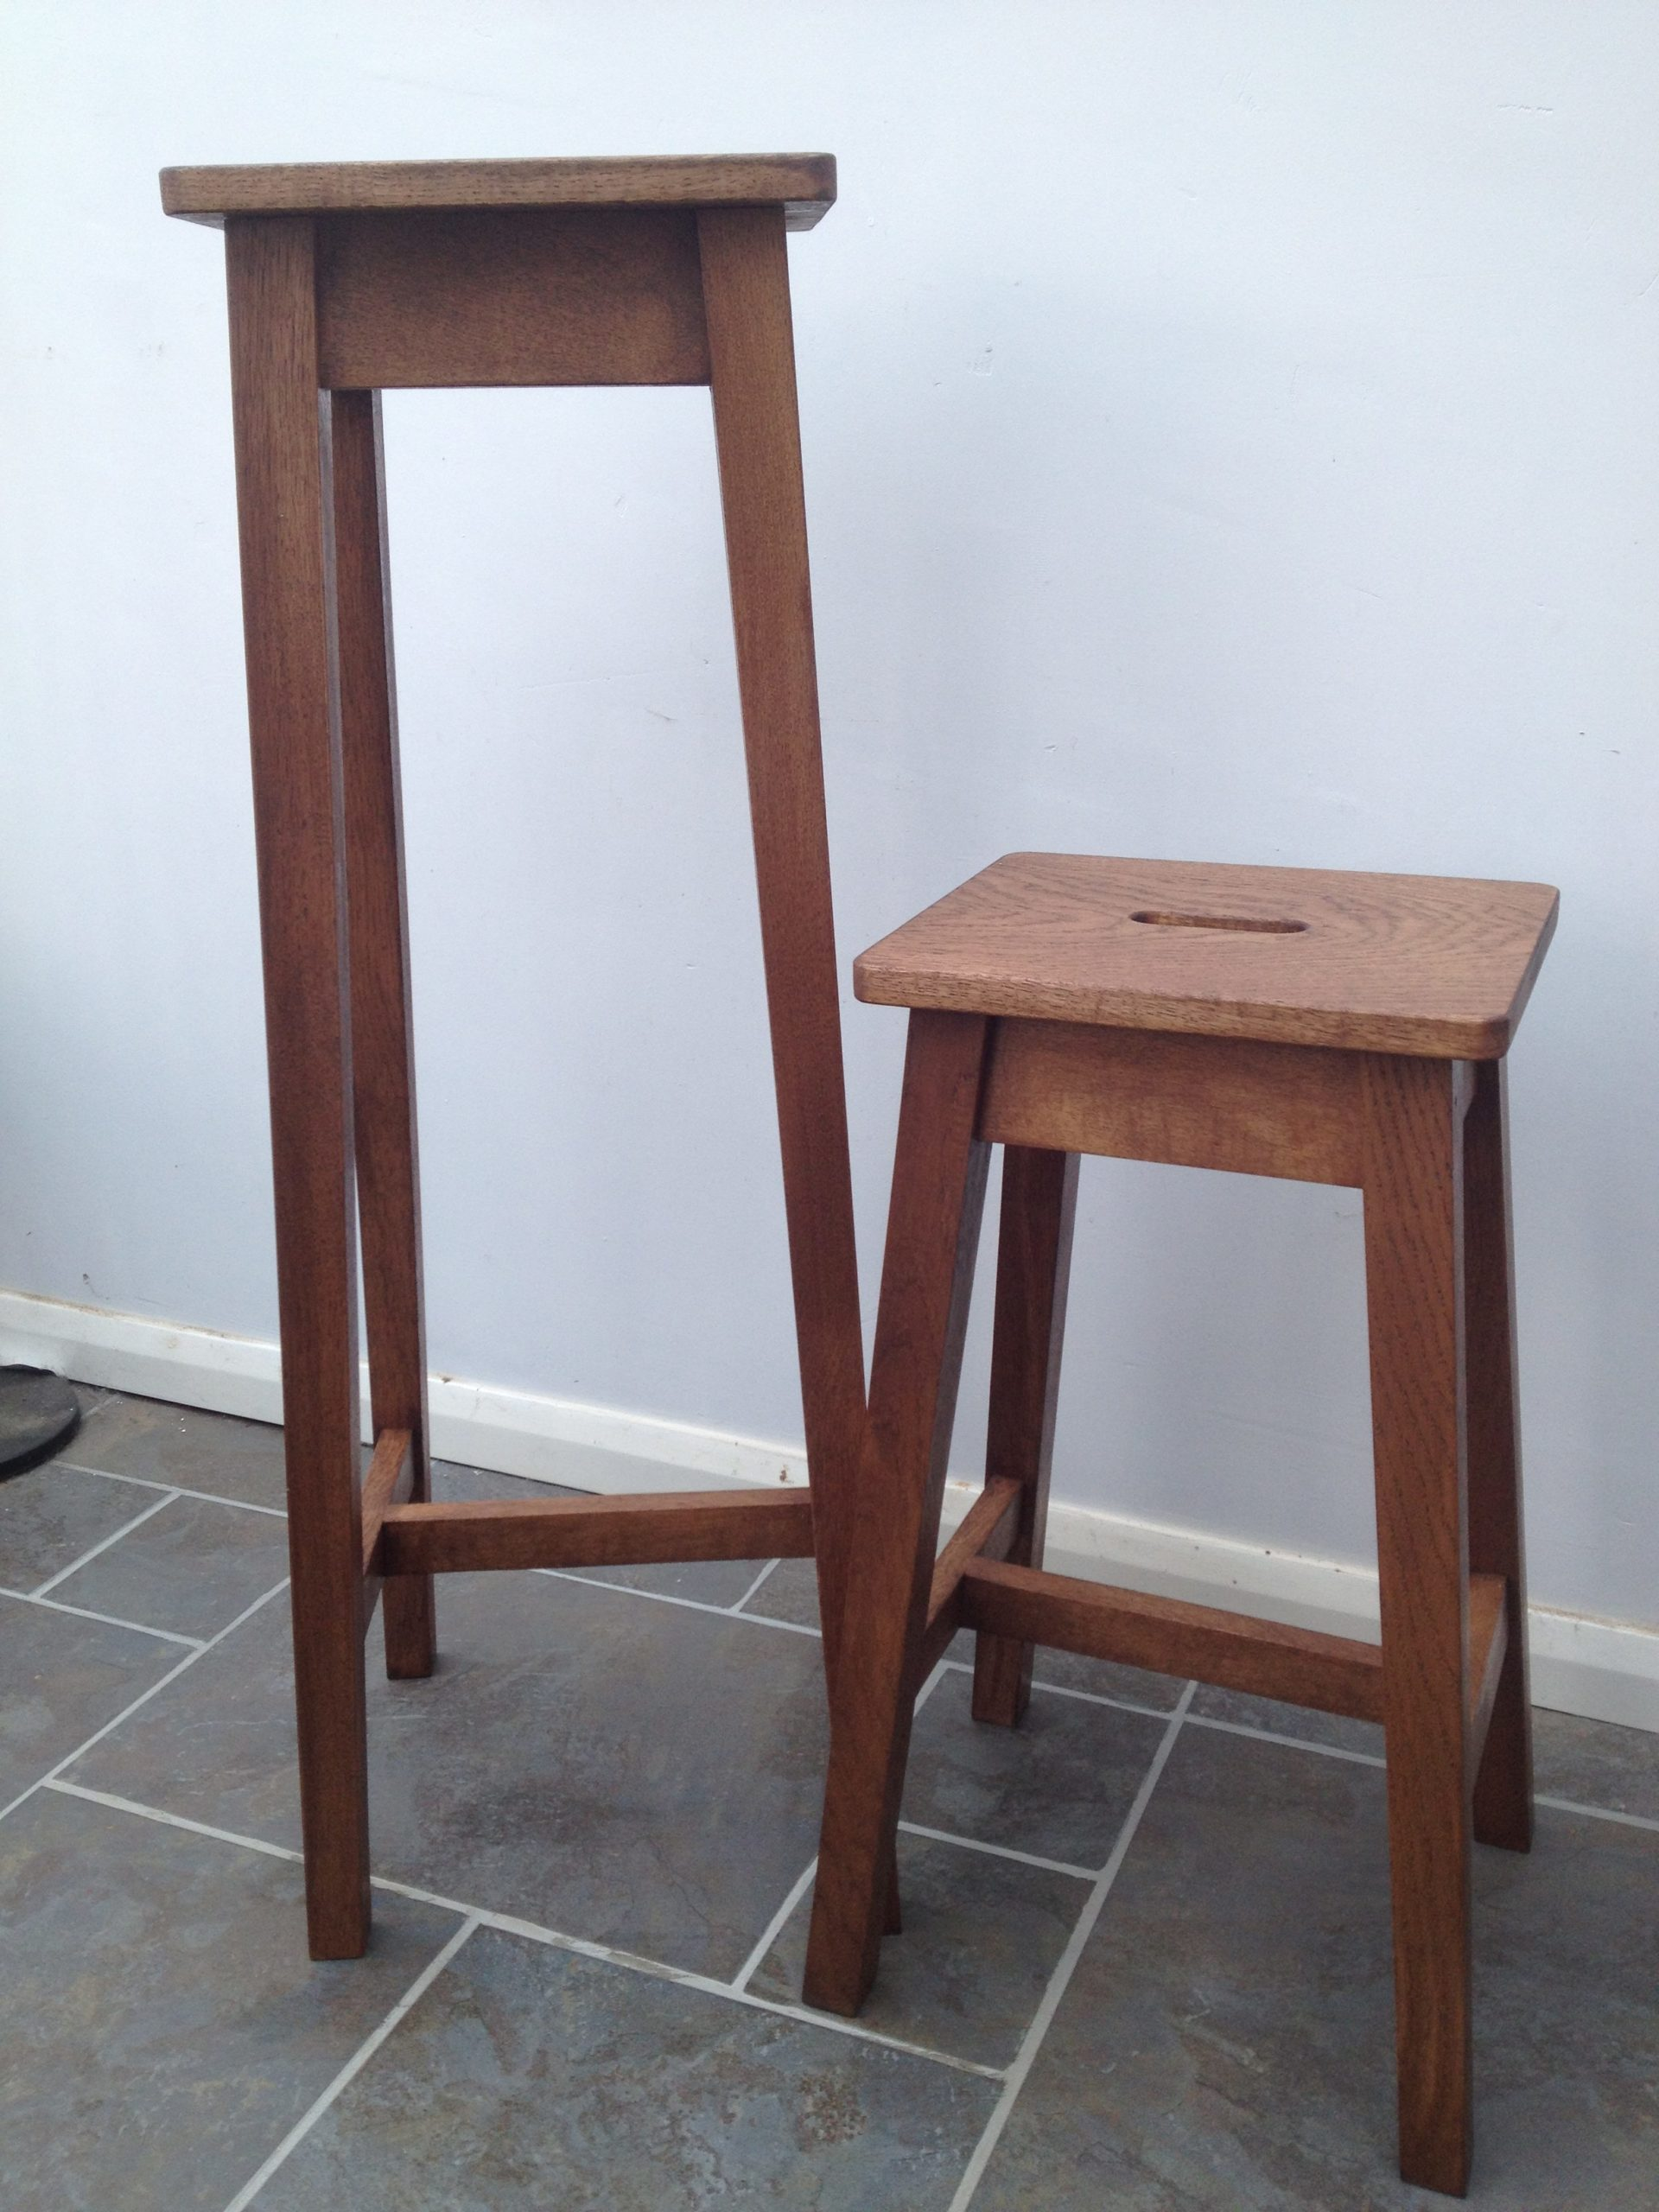 Little 'n large oak stools